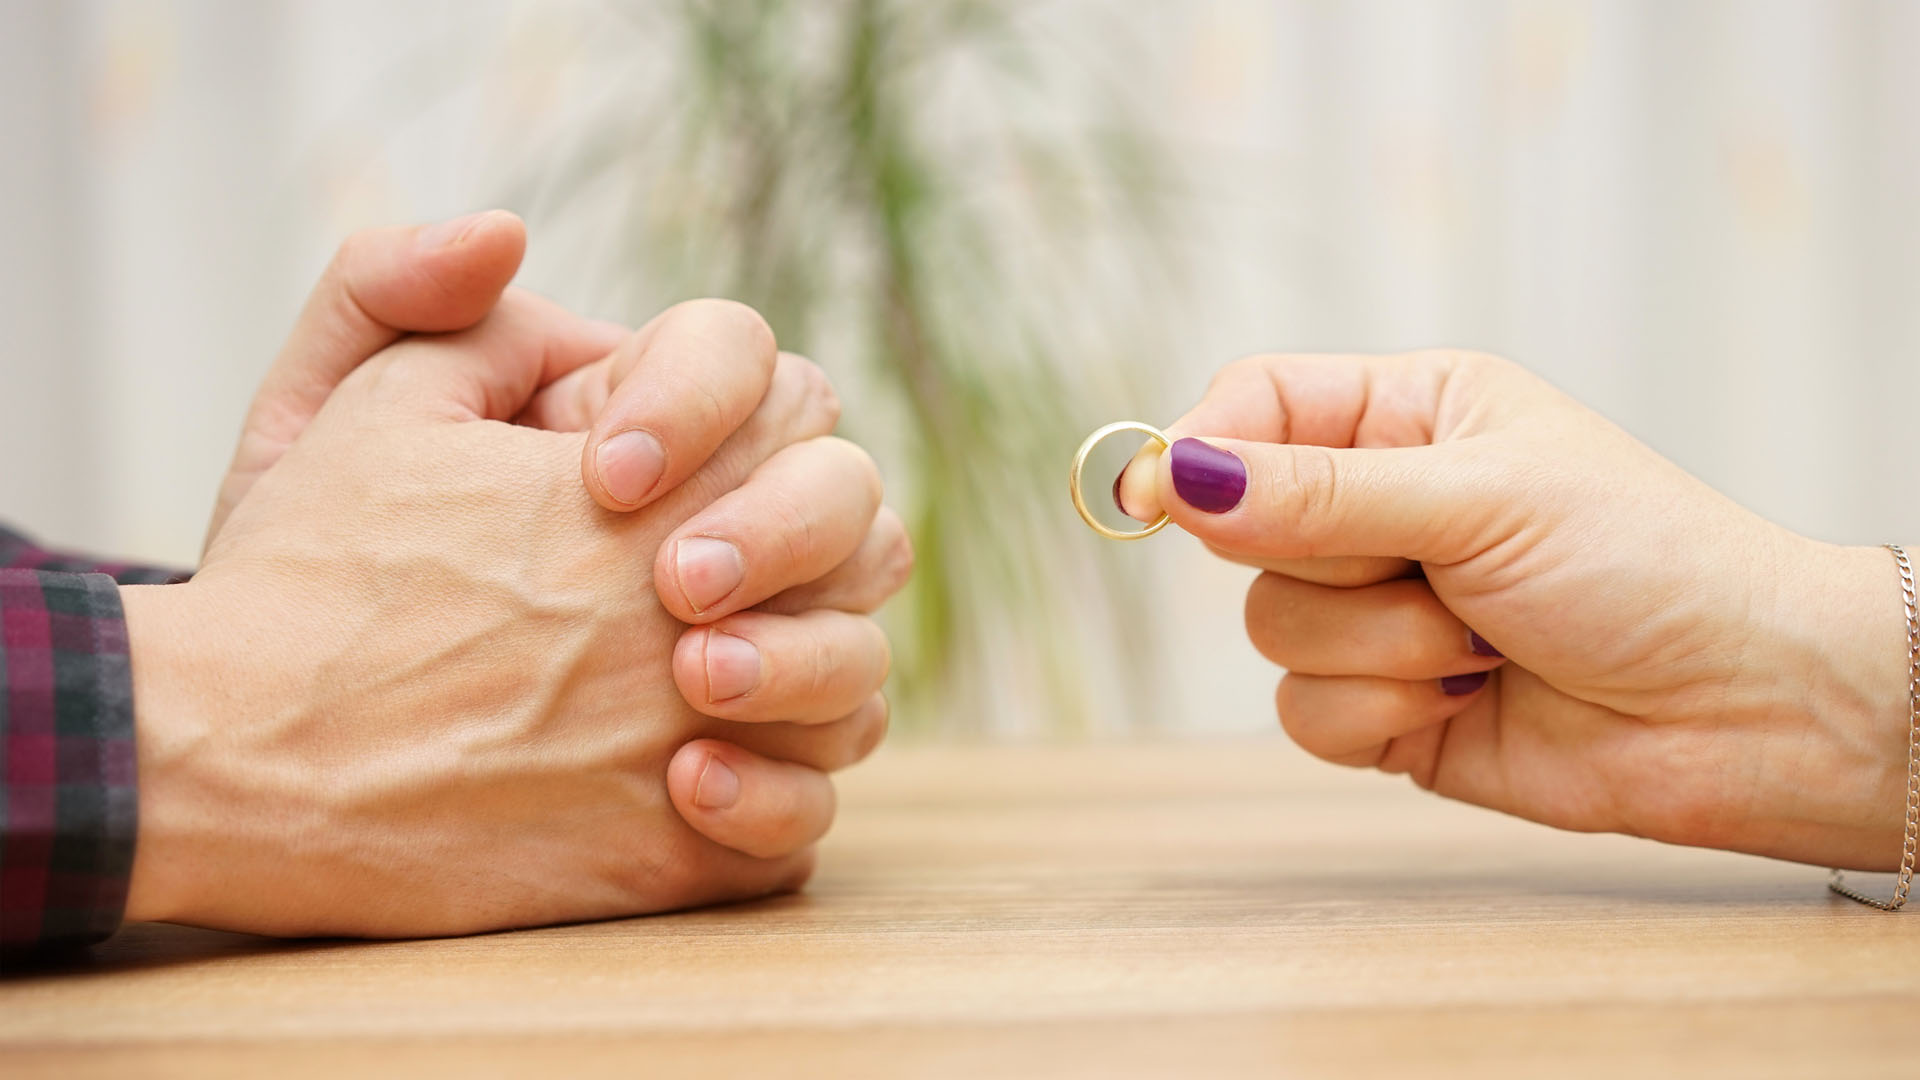 A womand handing back a ring to a man